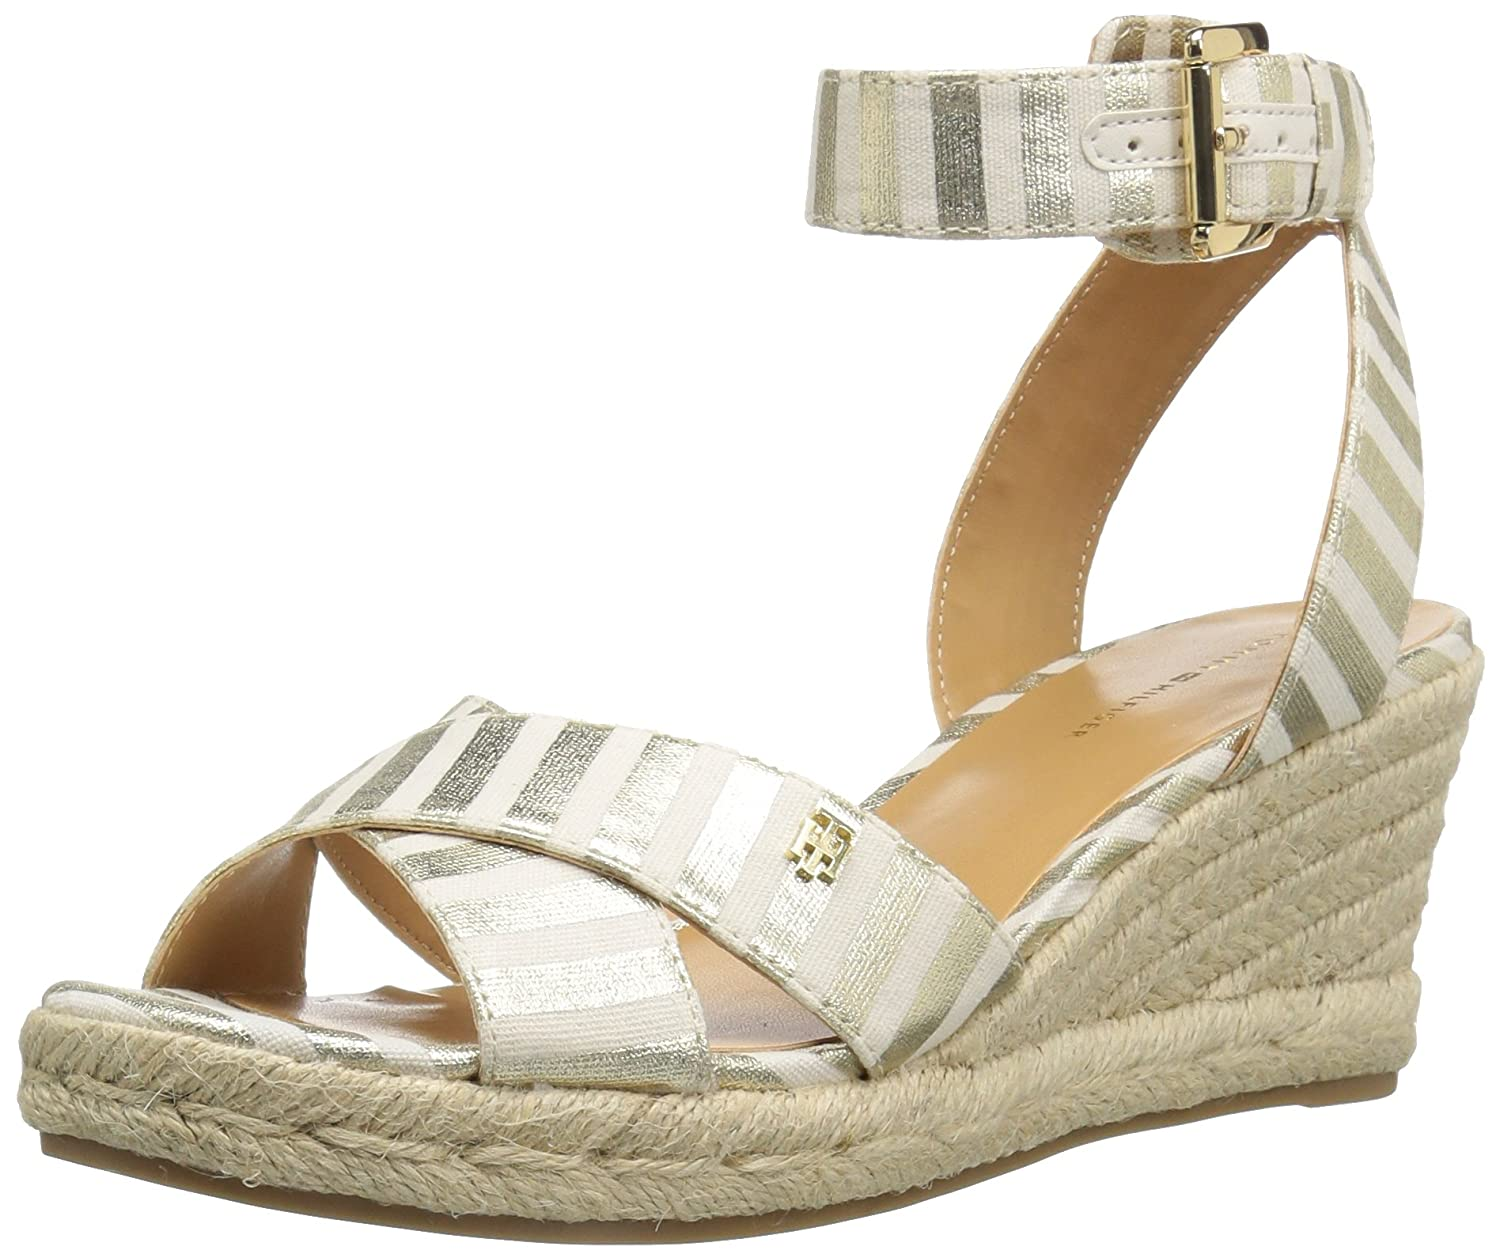 Tommy Hilfiger Women's Gorgis Wedge Sandal B01M7SC8JH 10.5 B(M) US|Gold